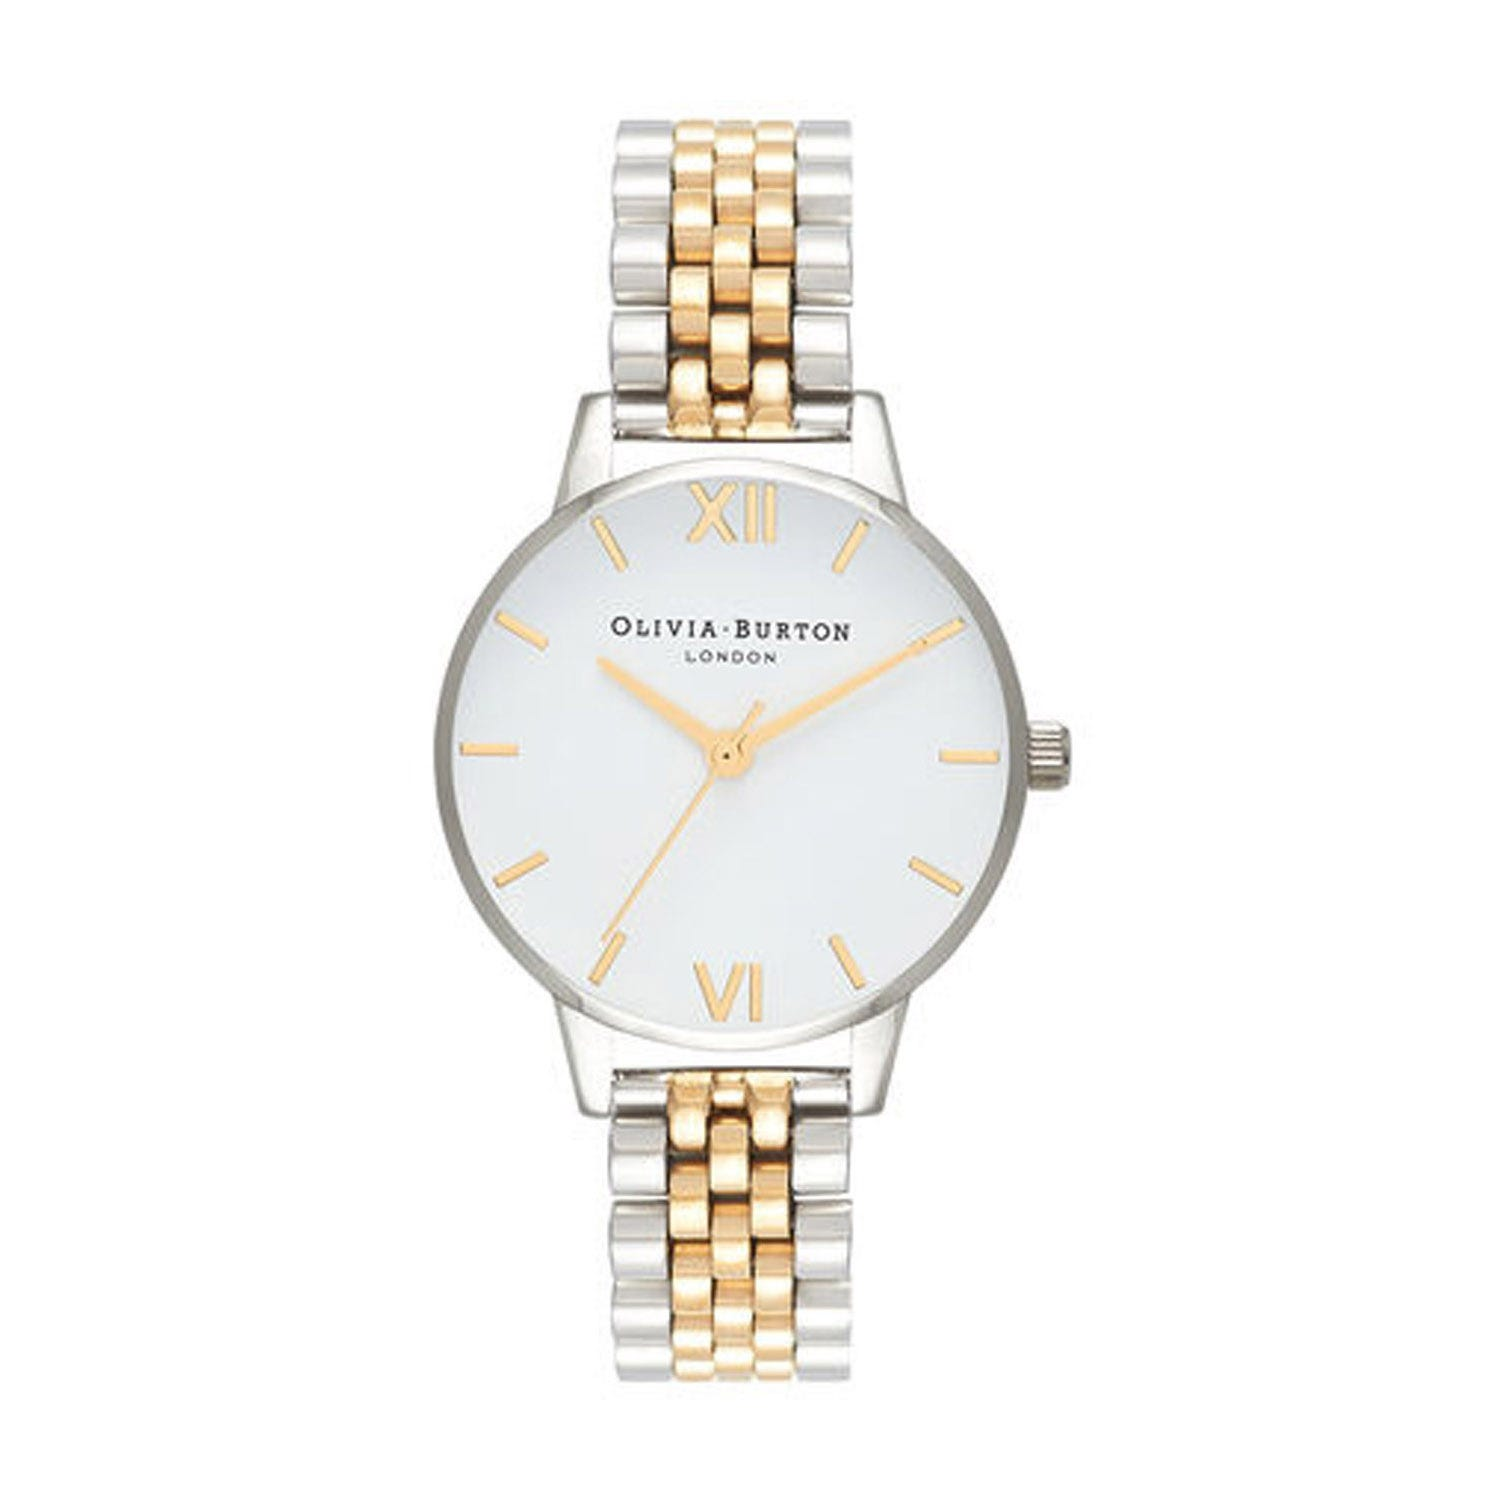 Olivia Burton White Dial & Two-Toned Bracelet Ladies' Watch